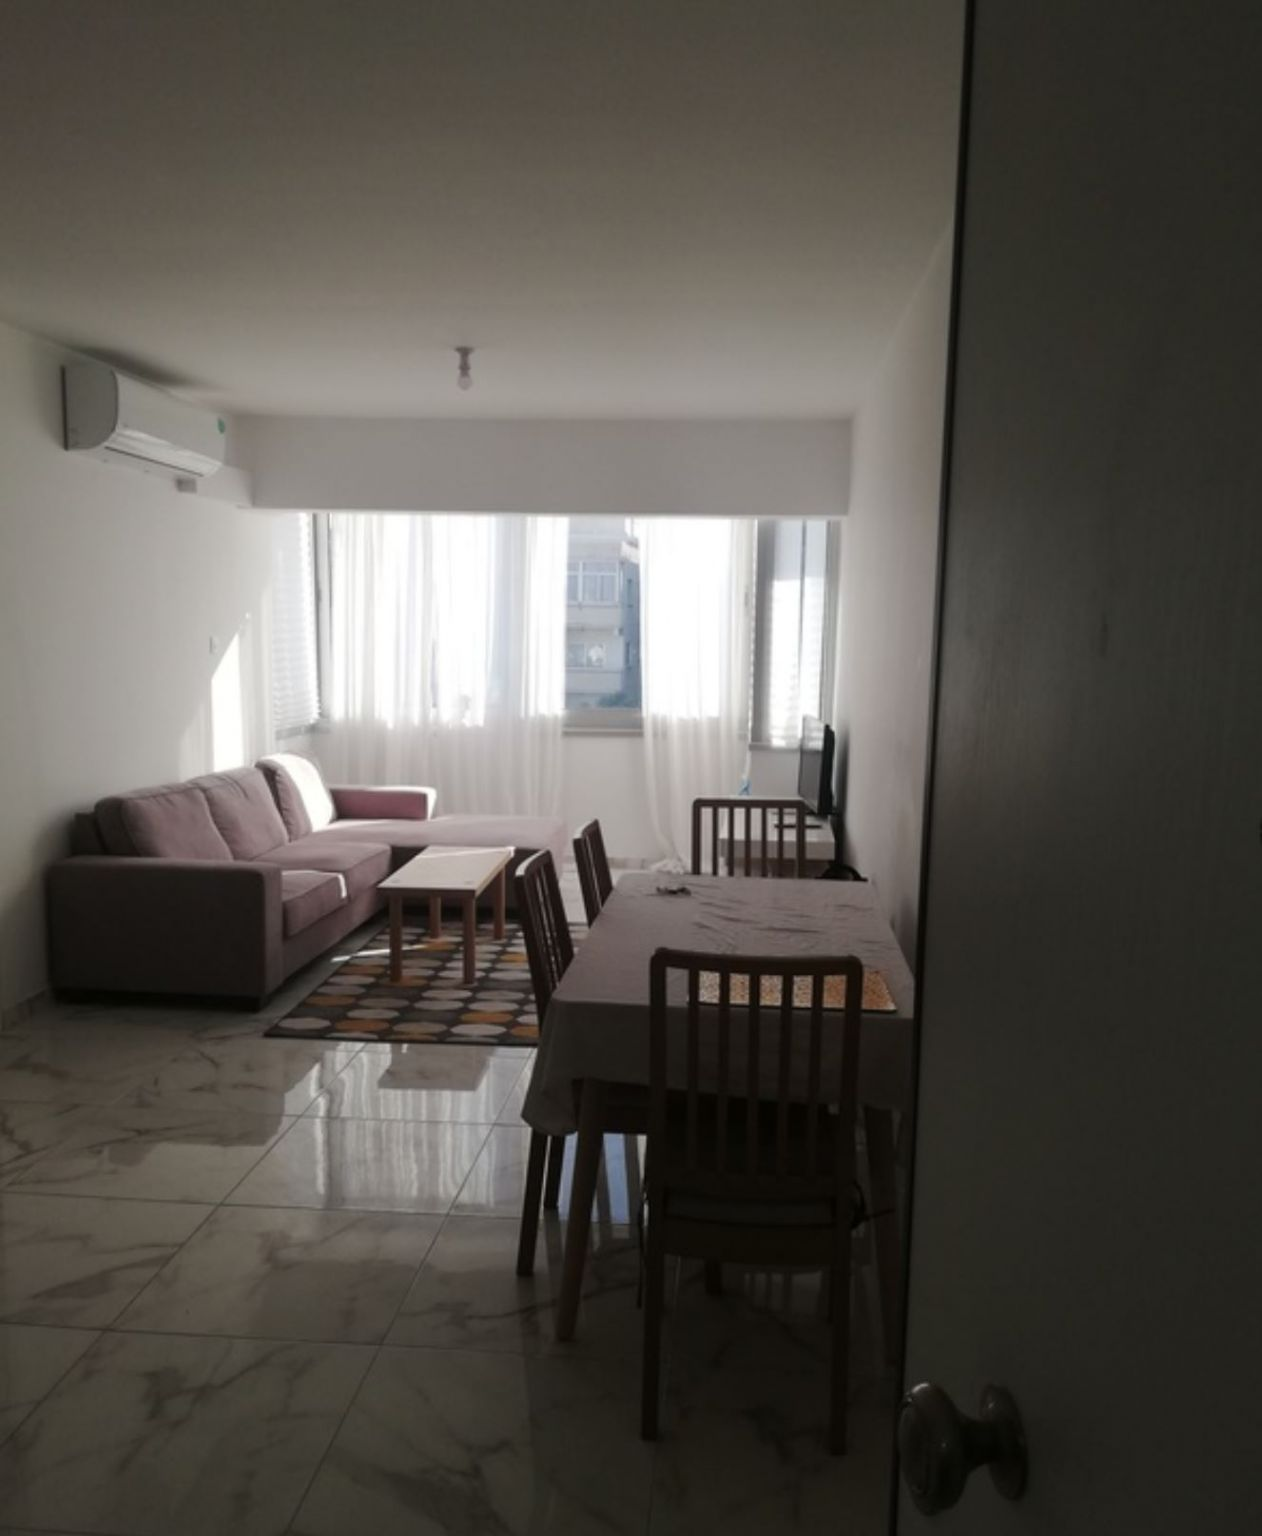 2 Bedroom Apartment For Rent In Nyc: 2 Bedroom Apartment In Neapolis, Limassol